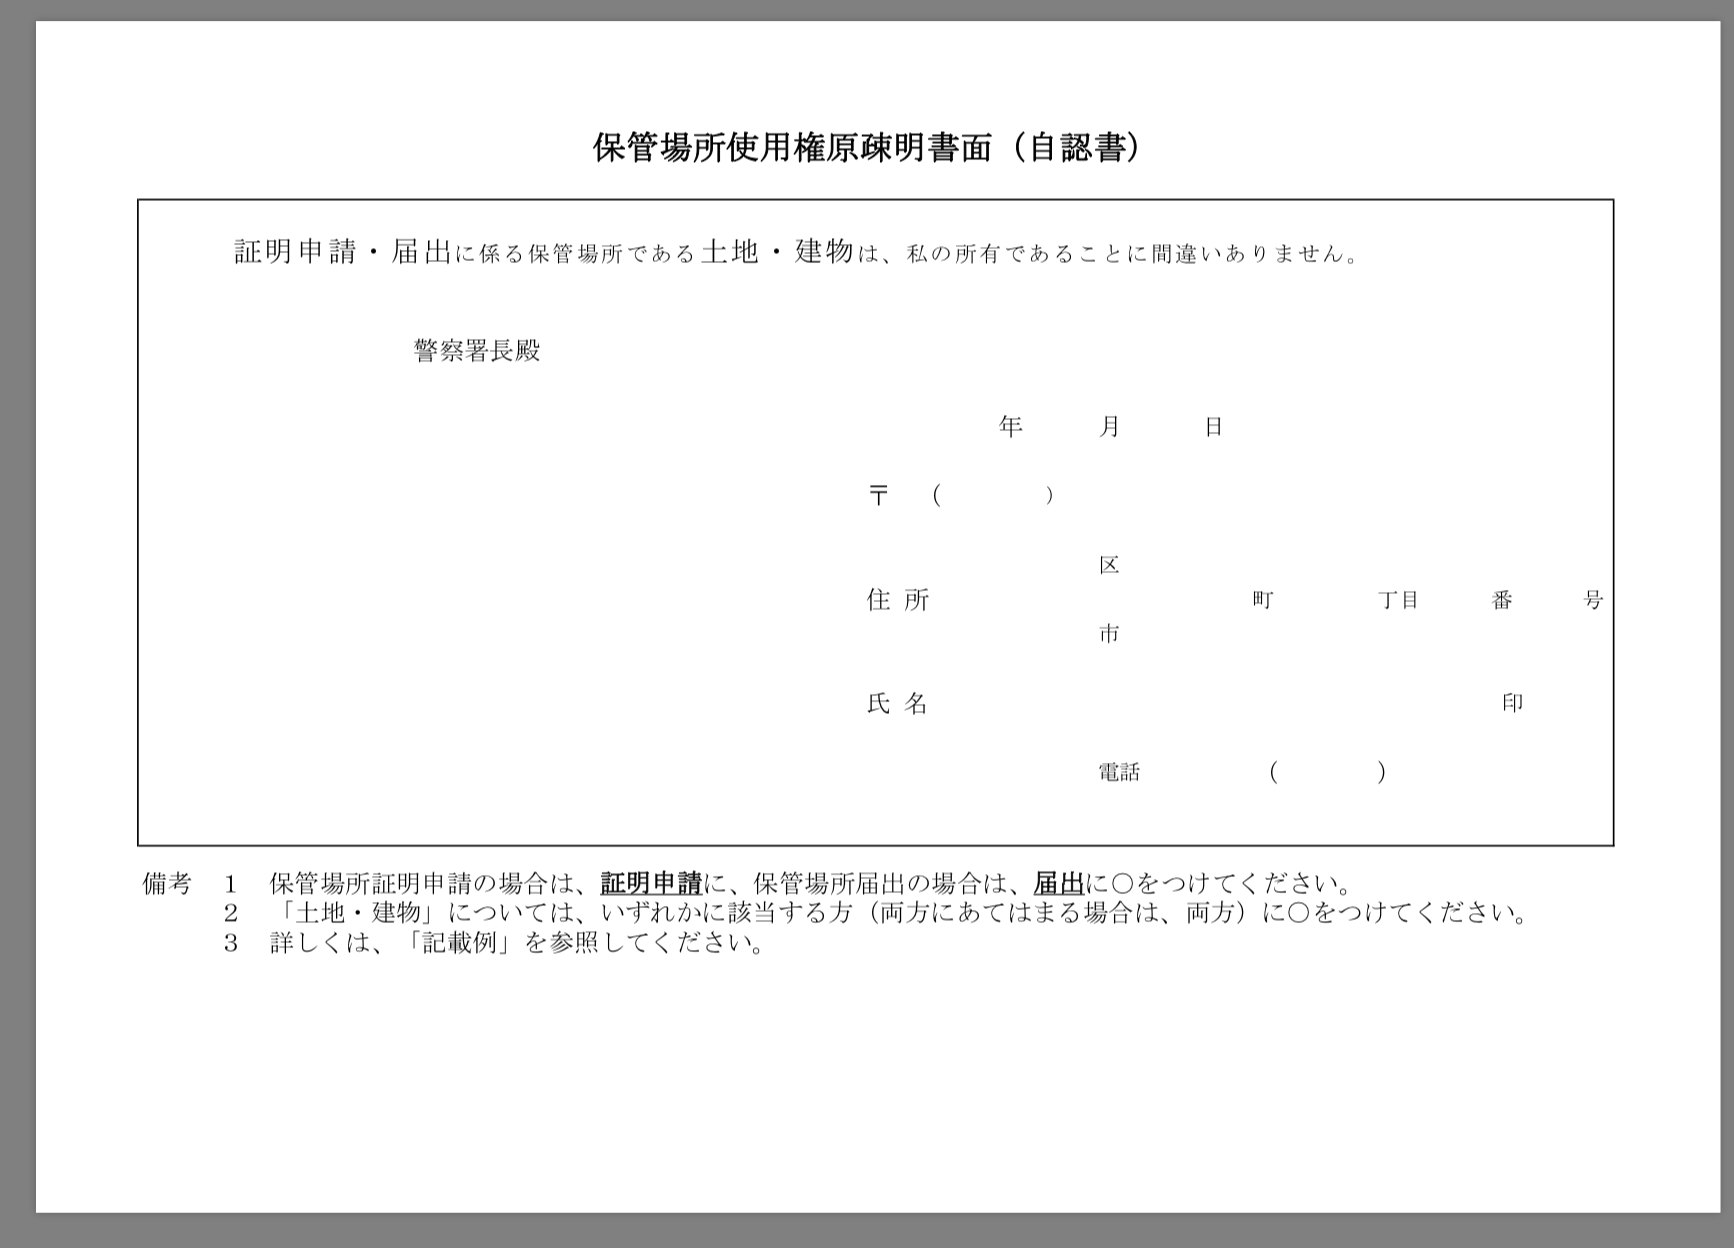 How to write prima facie evidence of car storage location license, (Hokanbasho shiyoukengen someisho: 保管場所使用権原疎明書 )